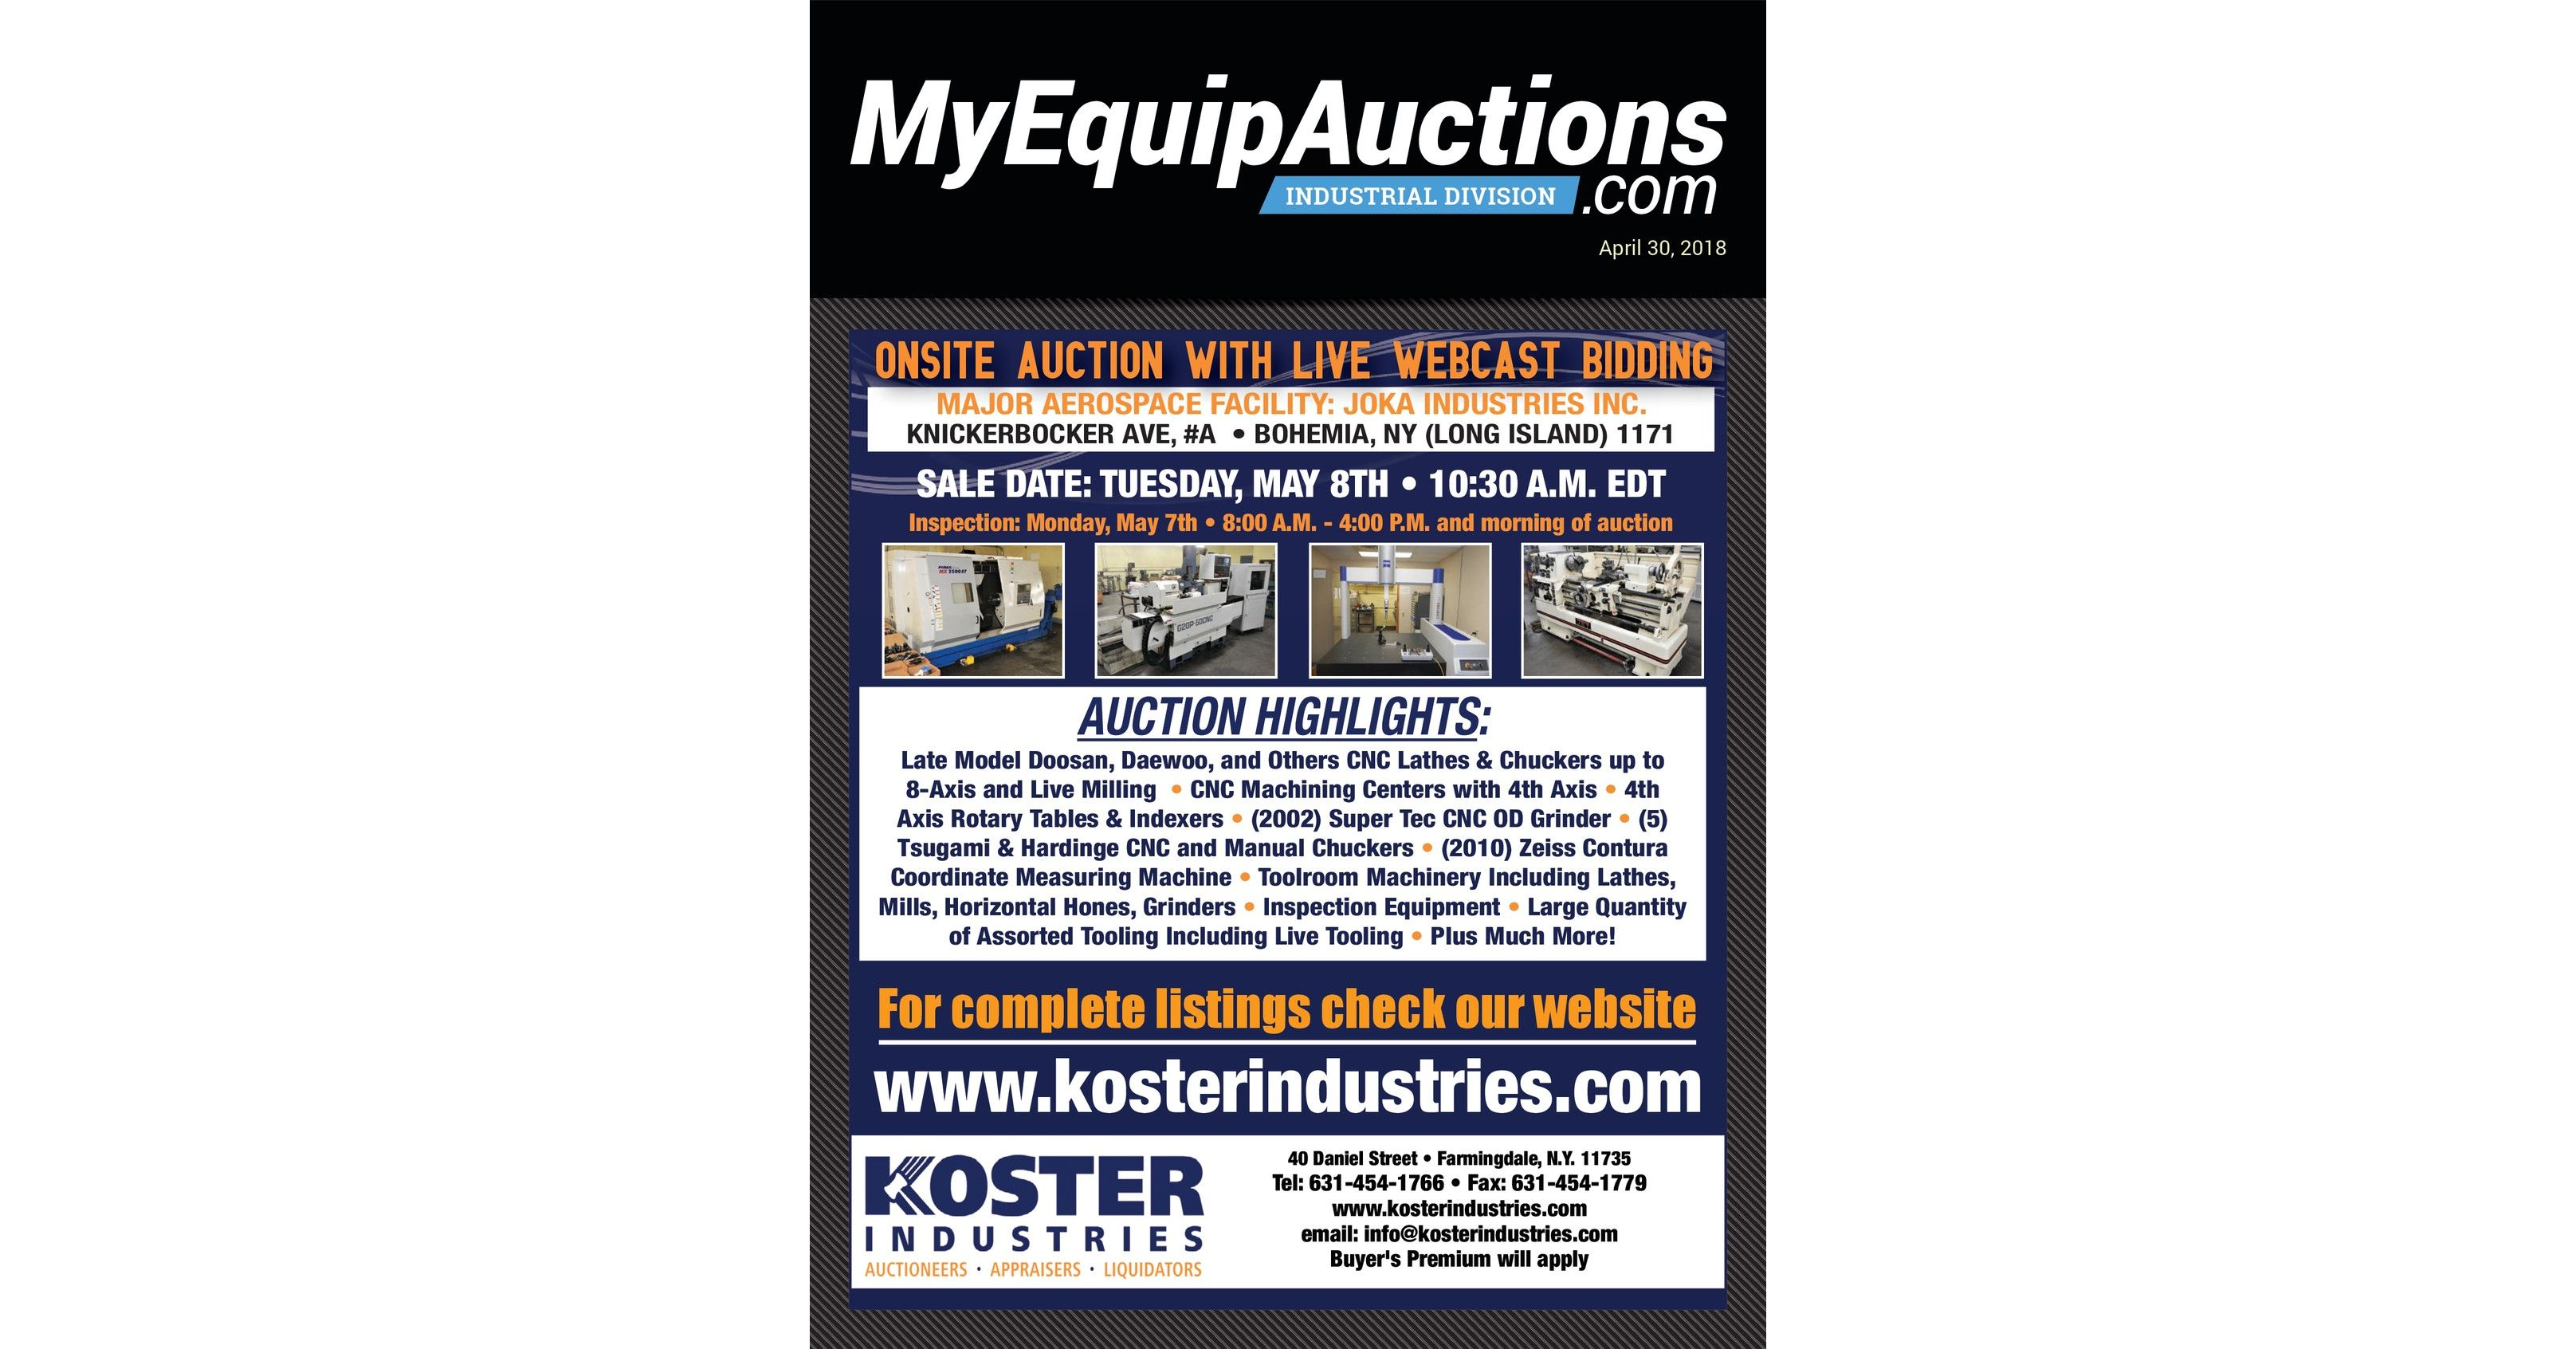 MyEquipAuctions - Industrial - 04302018